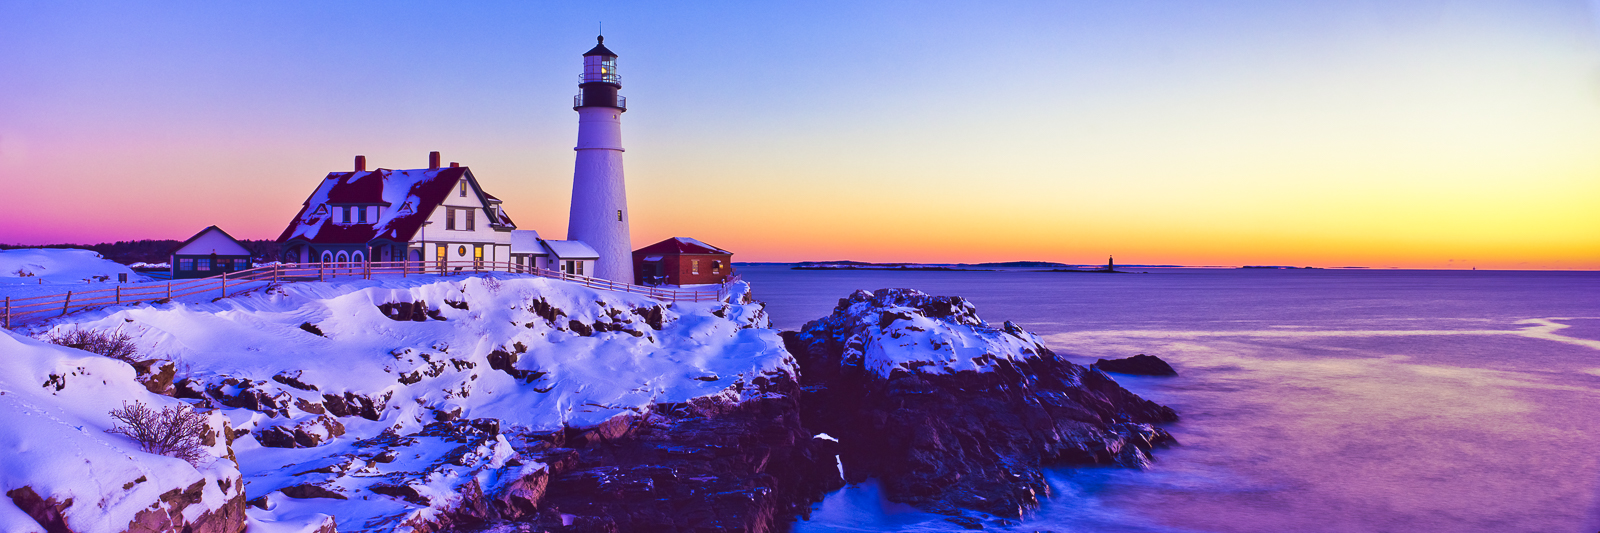 Day begins to break but offers no warmth to this frozen winter day on the Maine coast. Portland Head Light greats the sun with...